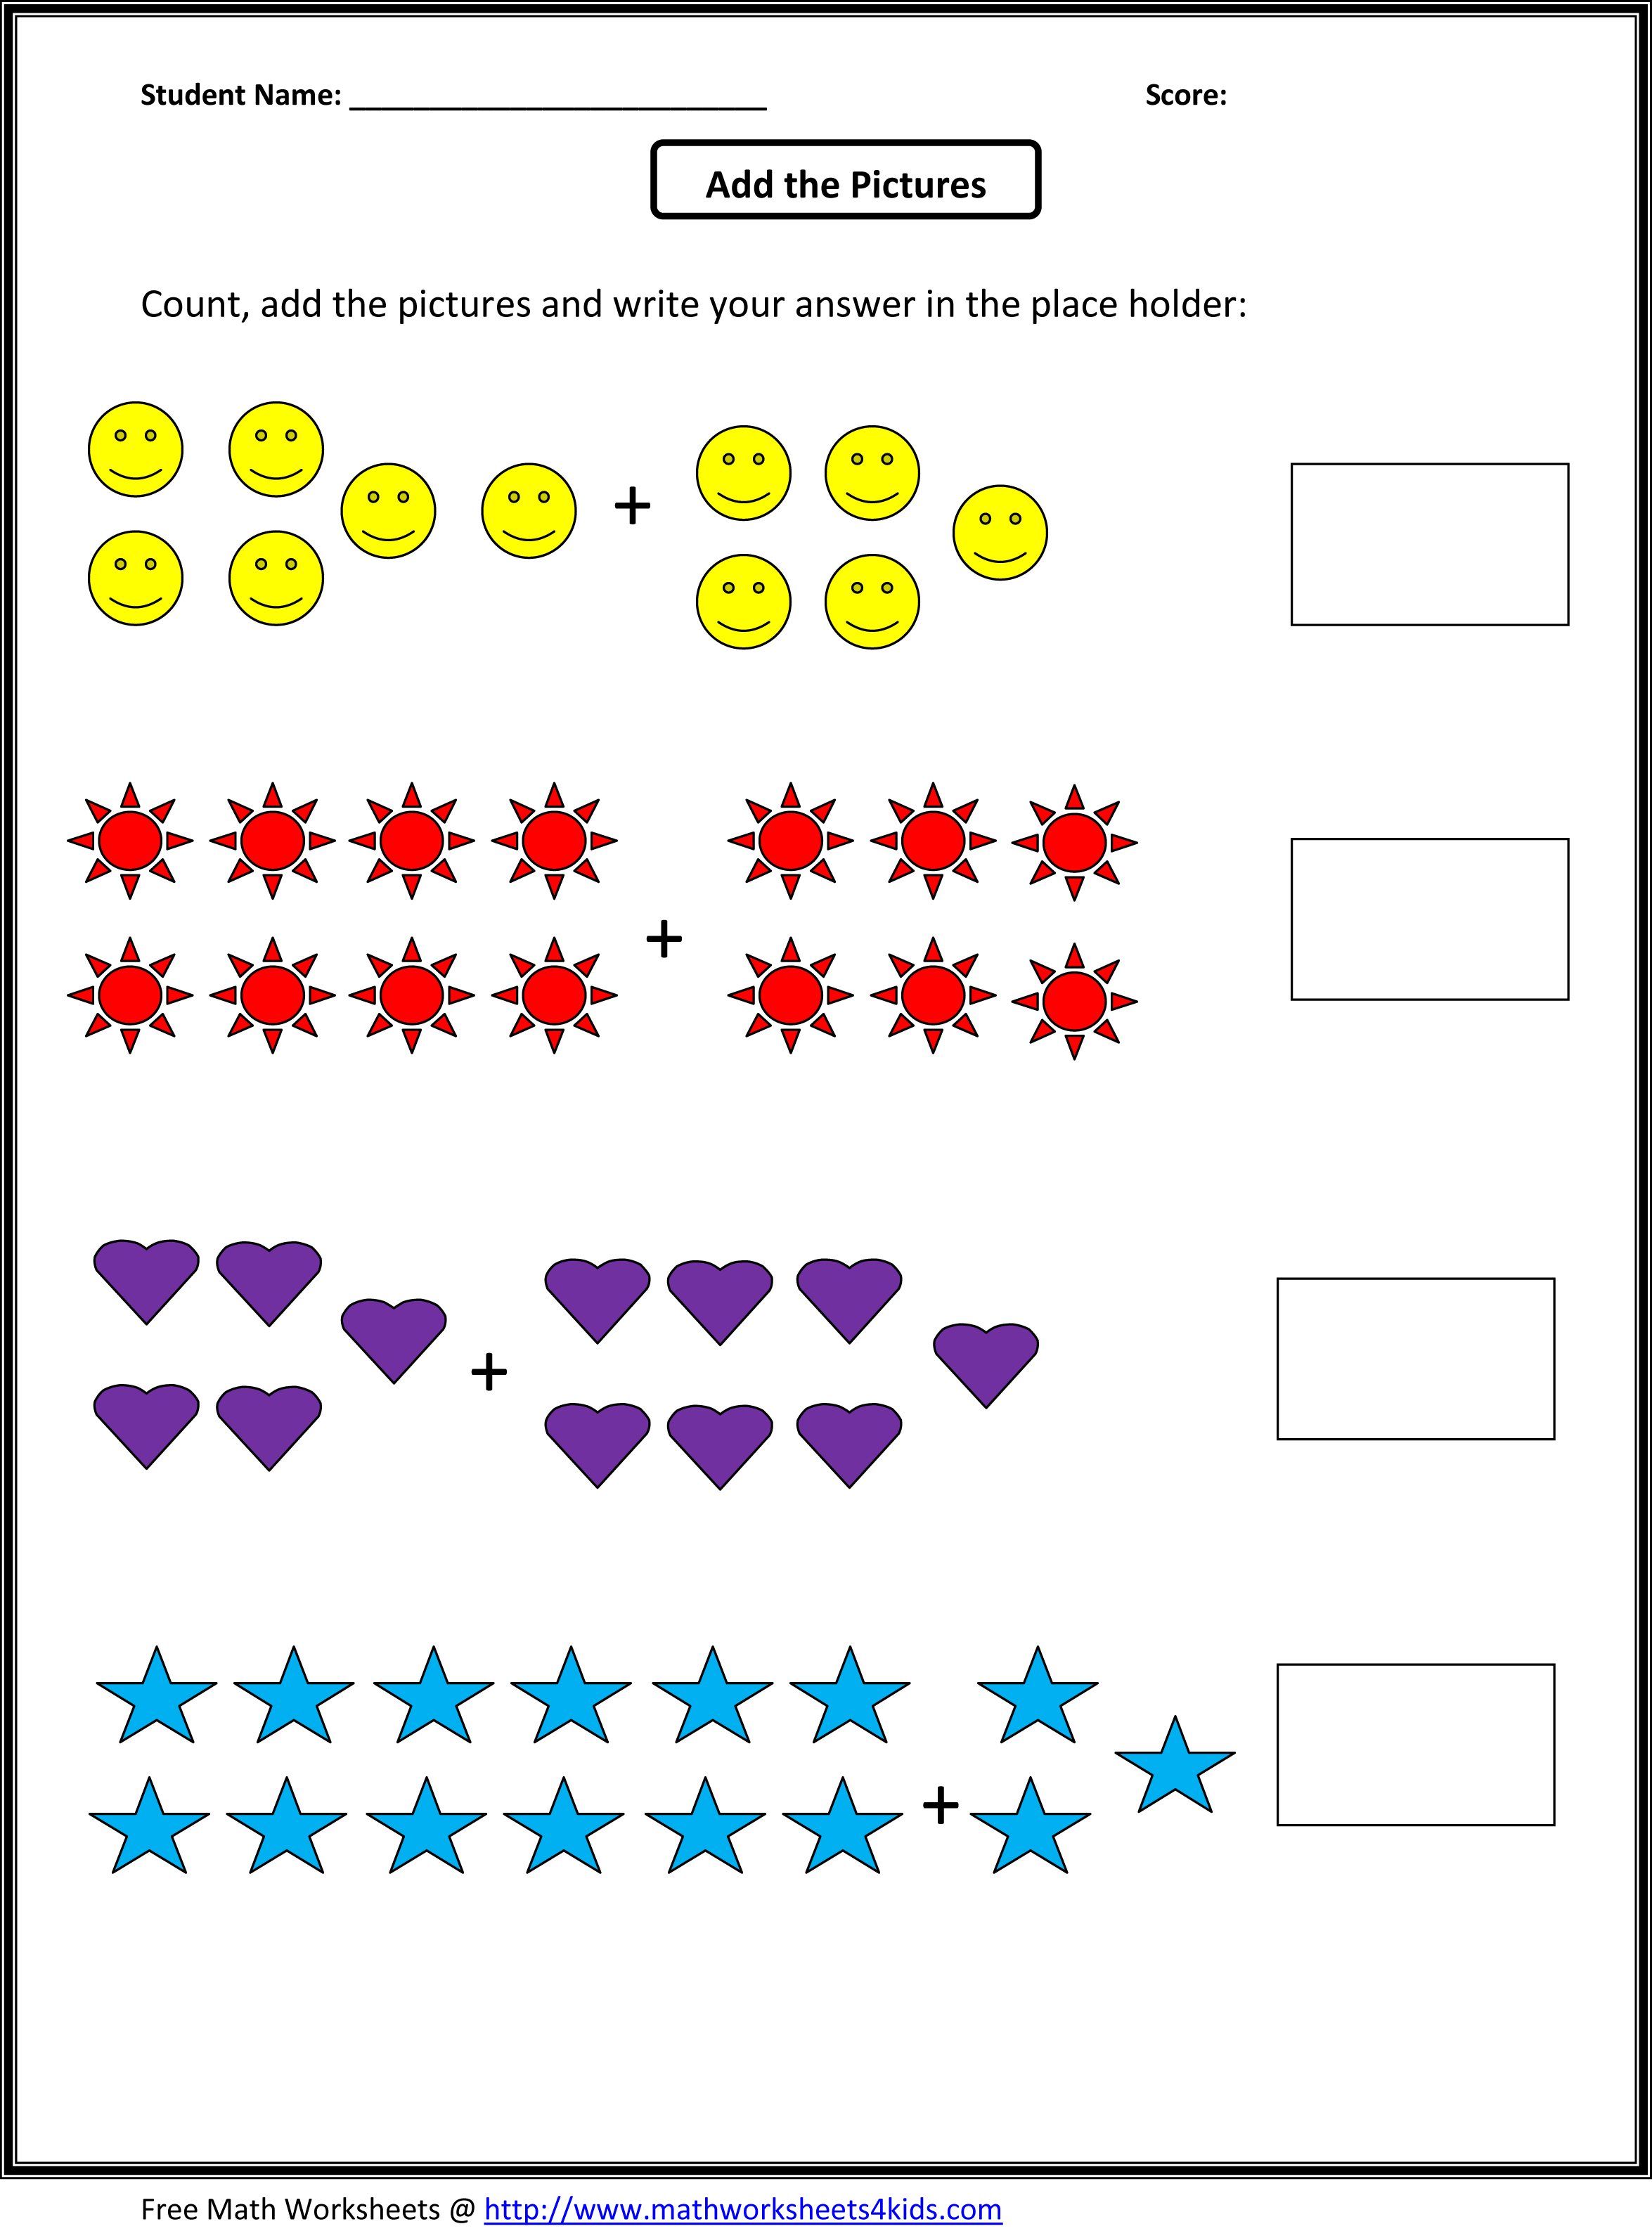 Weirdmailus  Personable Grade  Maths Worksheet  Reocurent With Likable Math Worksheets For St Grade Free  Reocurent With Appealing Family Expenses Worksheet Also Contour Lines Worksheets In Addition French Verb Conjugation Worksheets And Multiplication Worksheets To Do Online As Well As Free Grade  Worksheets Additionally Adverb Of Place Worksheet From Reocurentcom With Weirdmailus  Likable Grade  Maths Worksheet  Reocurent With Appealing Math Worksheets For St Grade Free  Reocurent And Personable Family Expenses Worksheet Also Contour Lines Worksheets In Addition French Verb Conjugation Worksheets From Reocurentcom